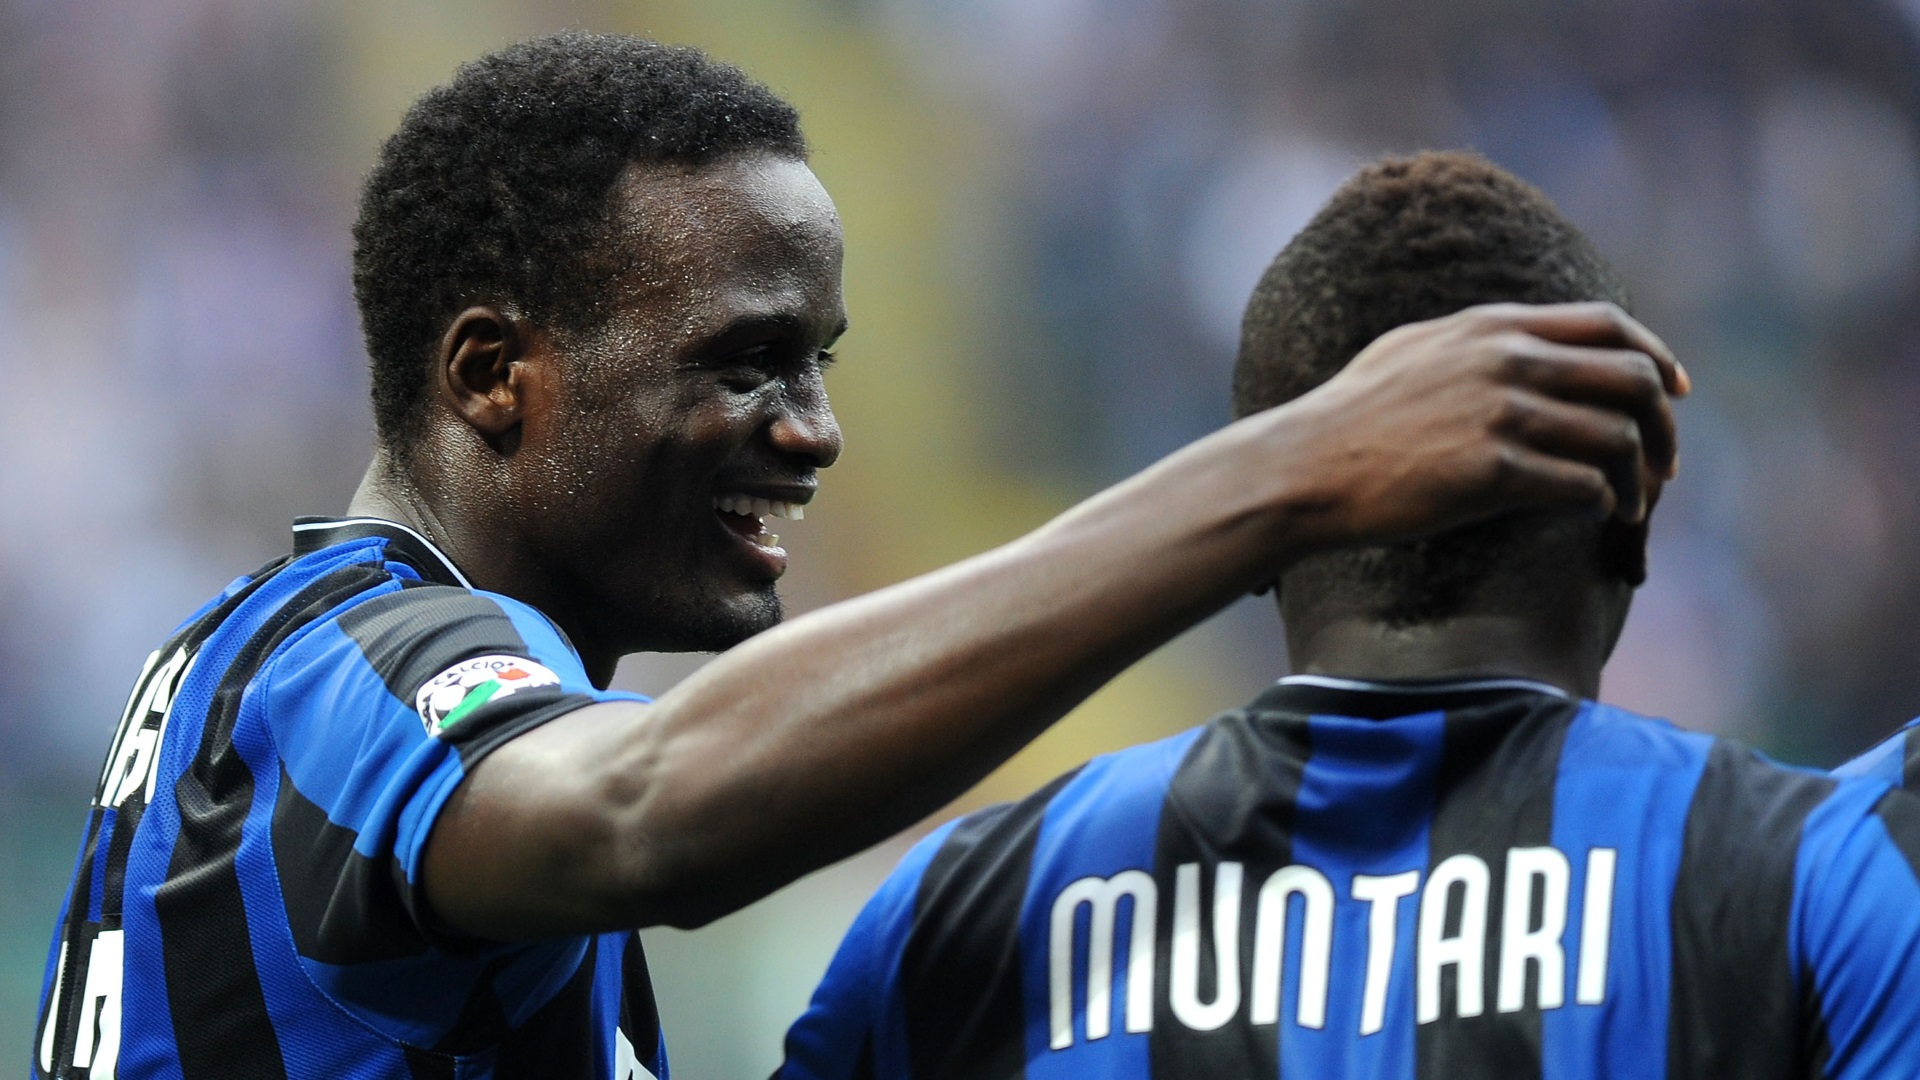 McDonald Mariga & Sulley Muntari of Inter Milan